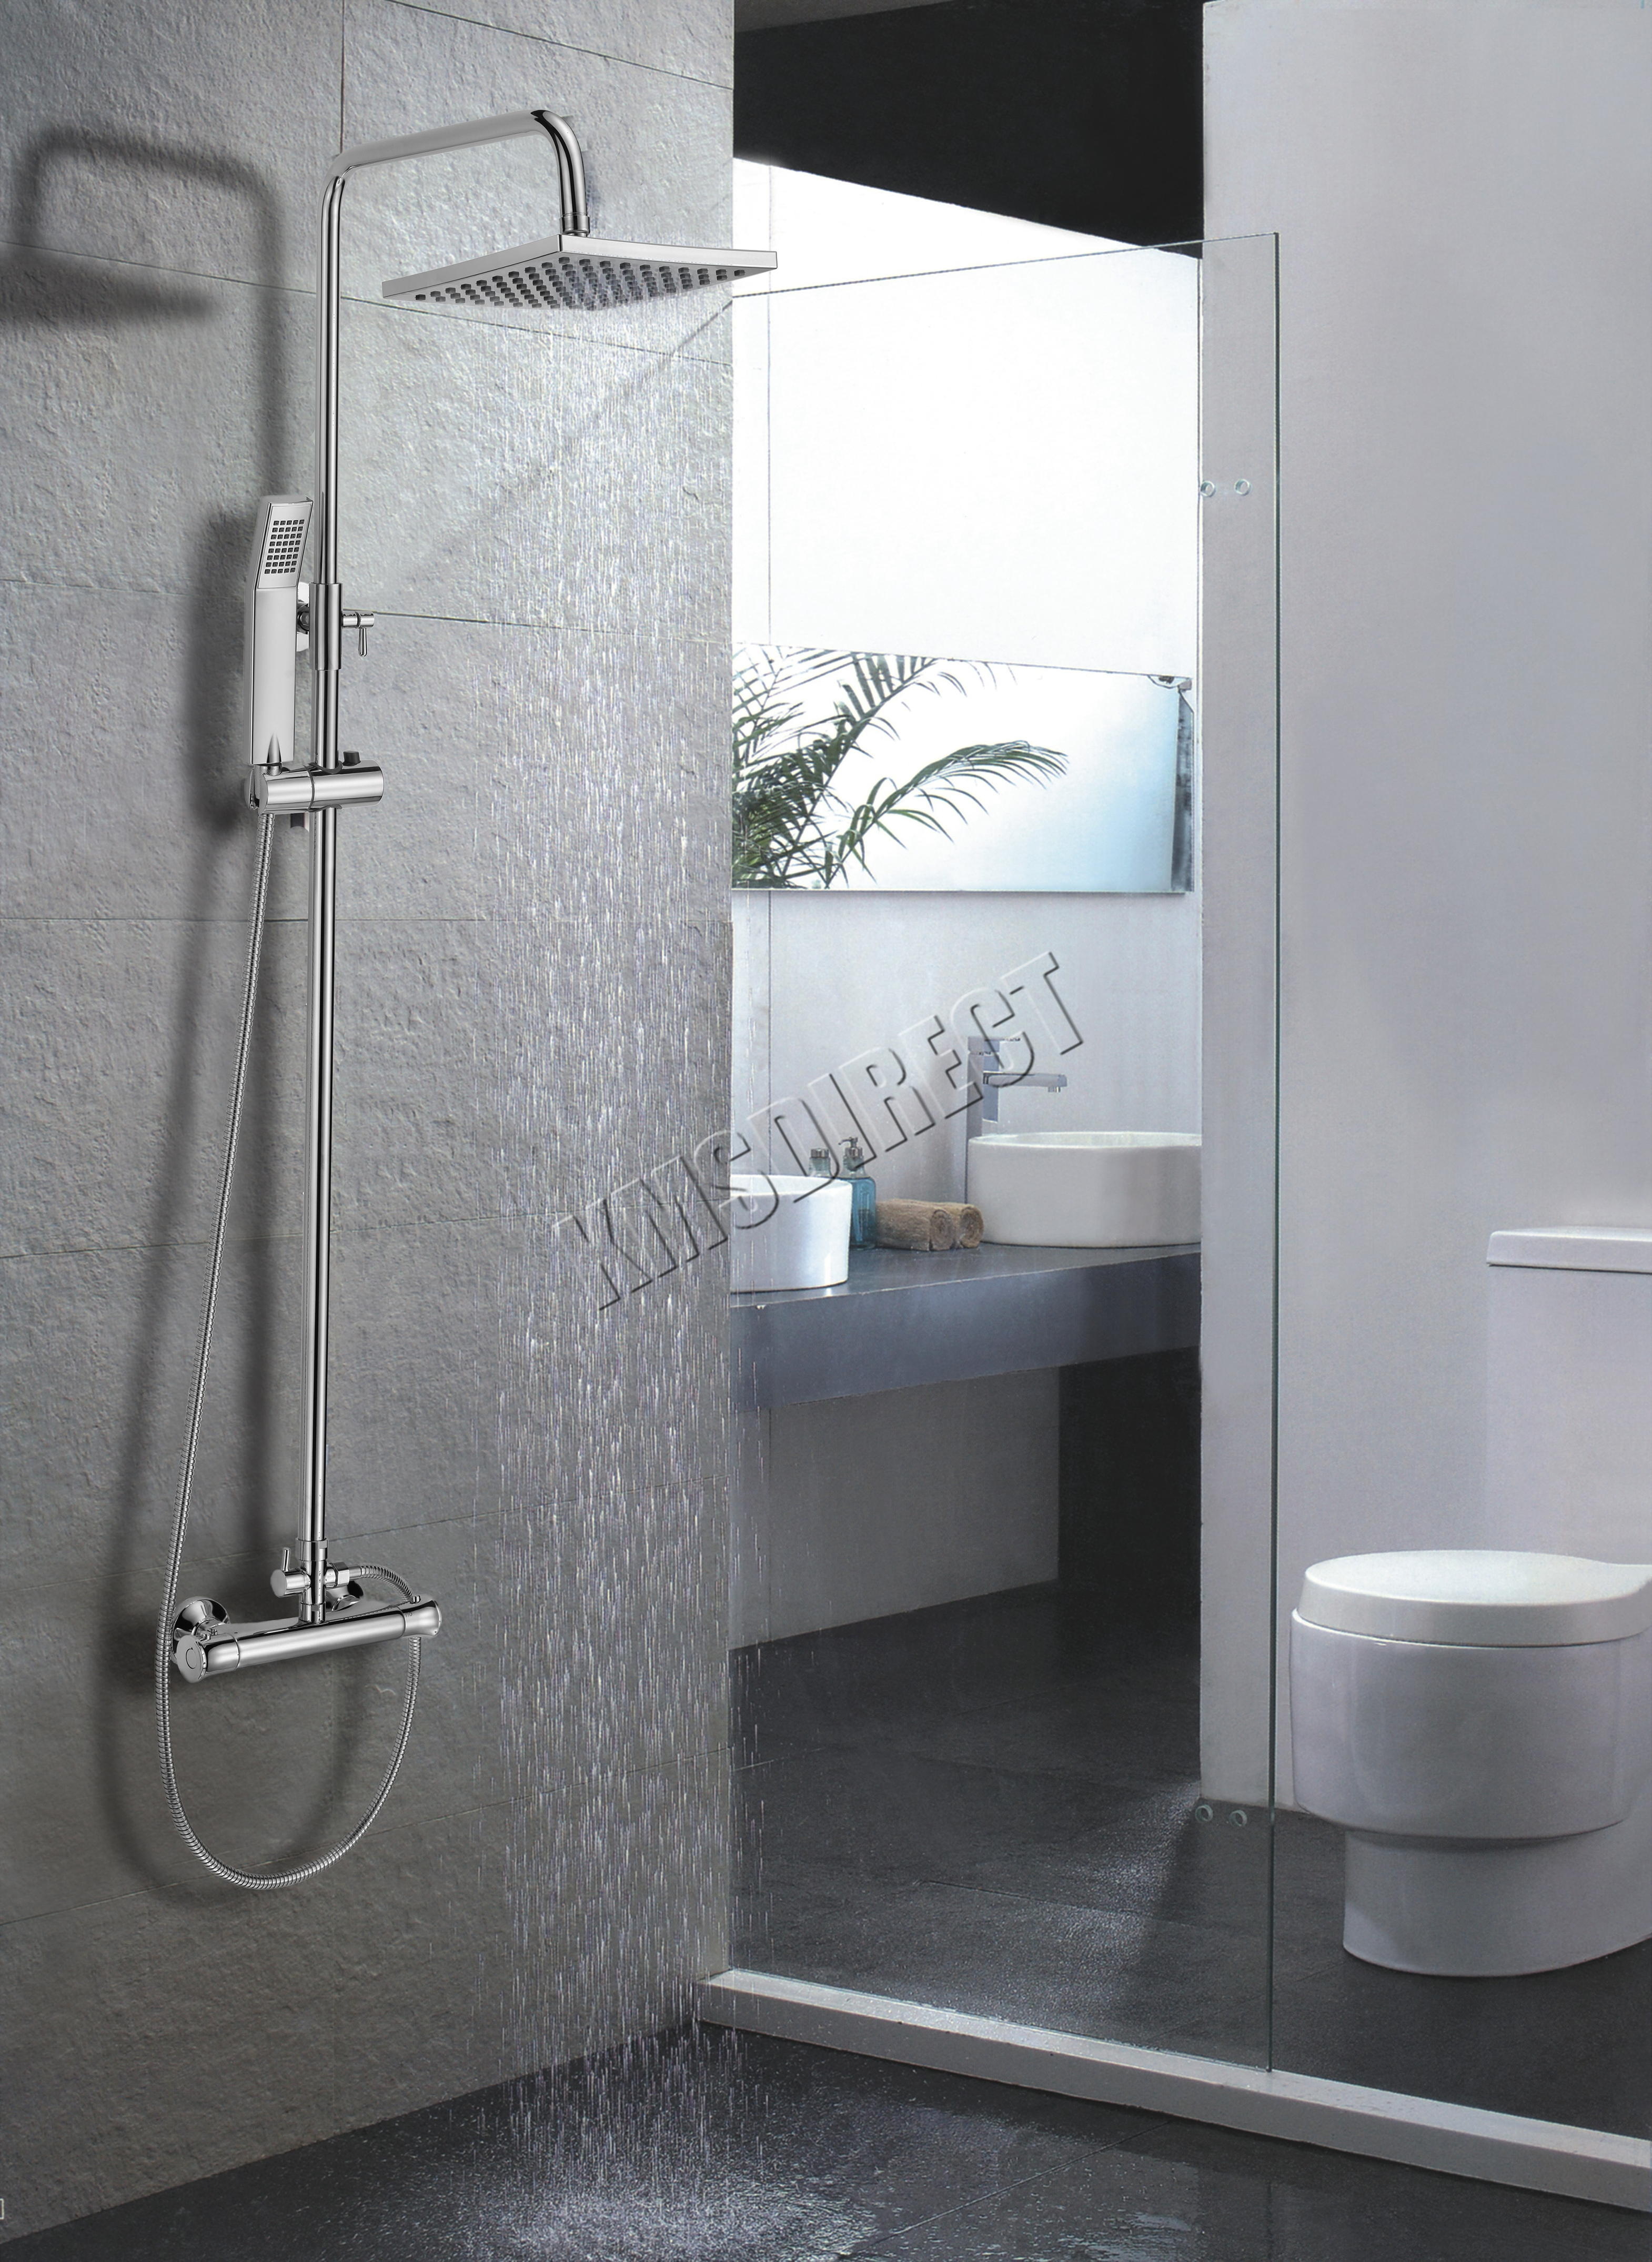 FoxHunter Modern Bathroom Mixer Shower Set Twin Head Square Chrome ...